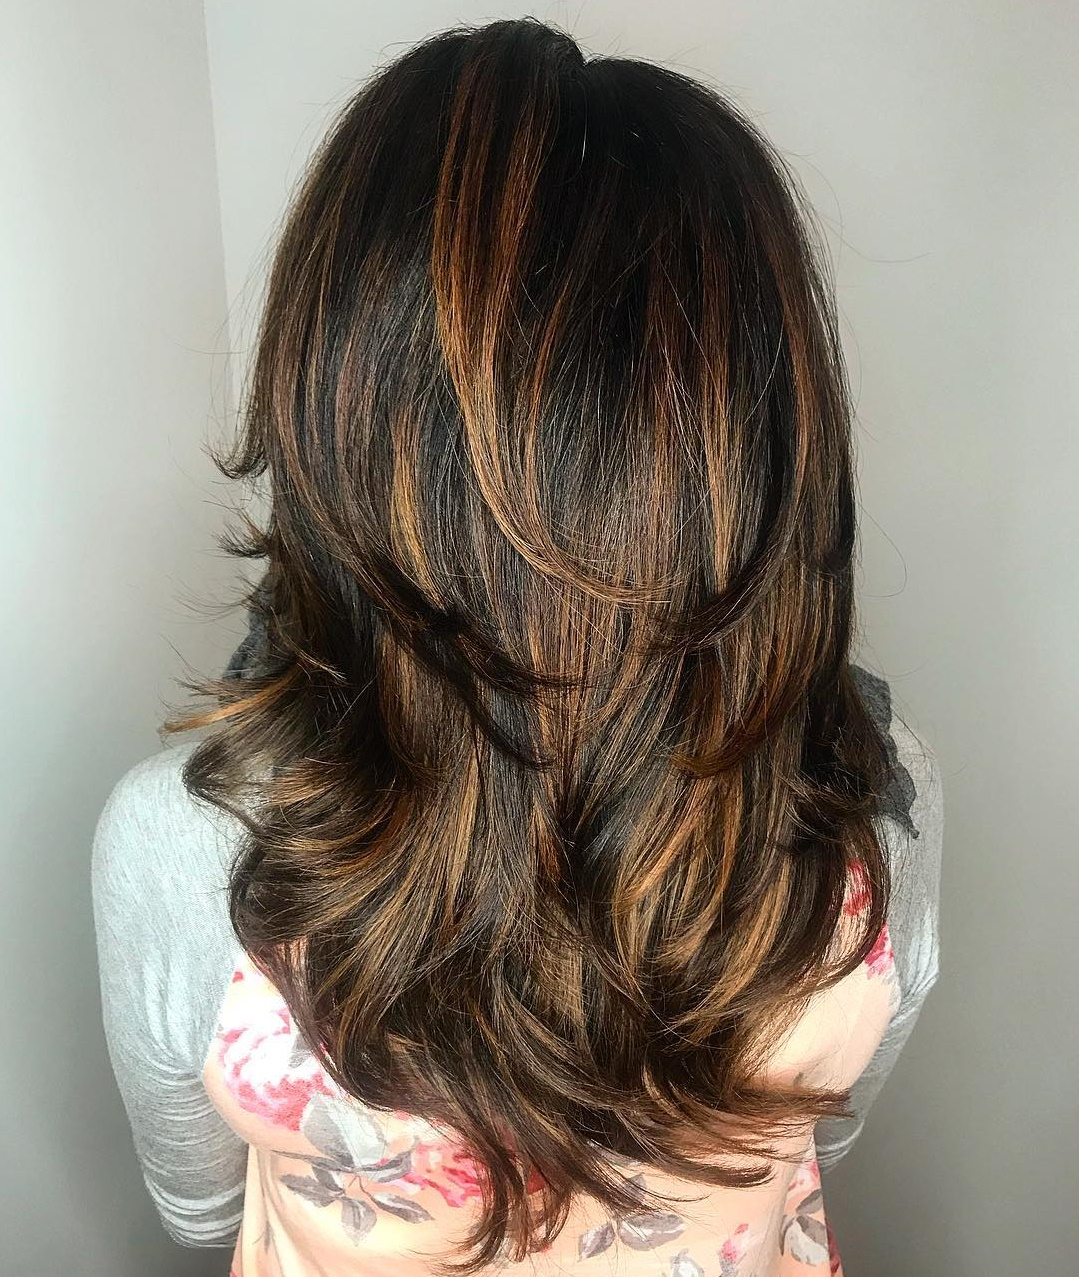 Dark Hair with Layers and Caramel Highlights